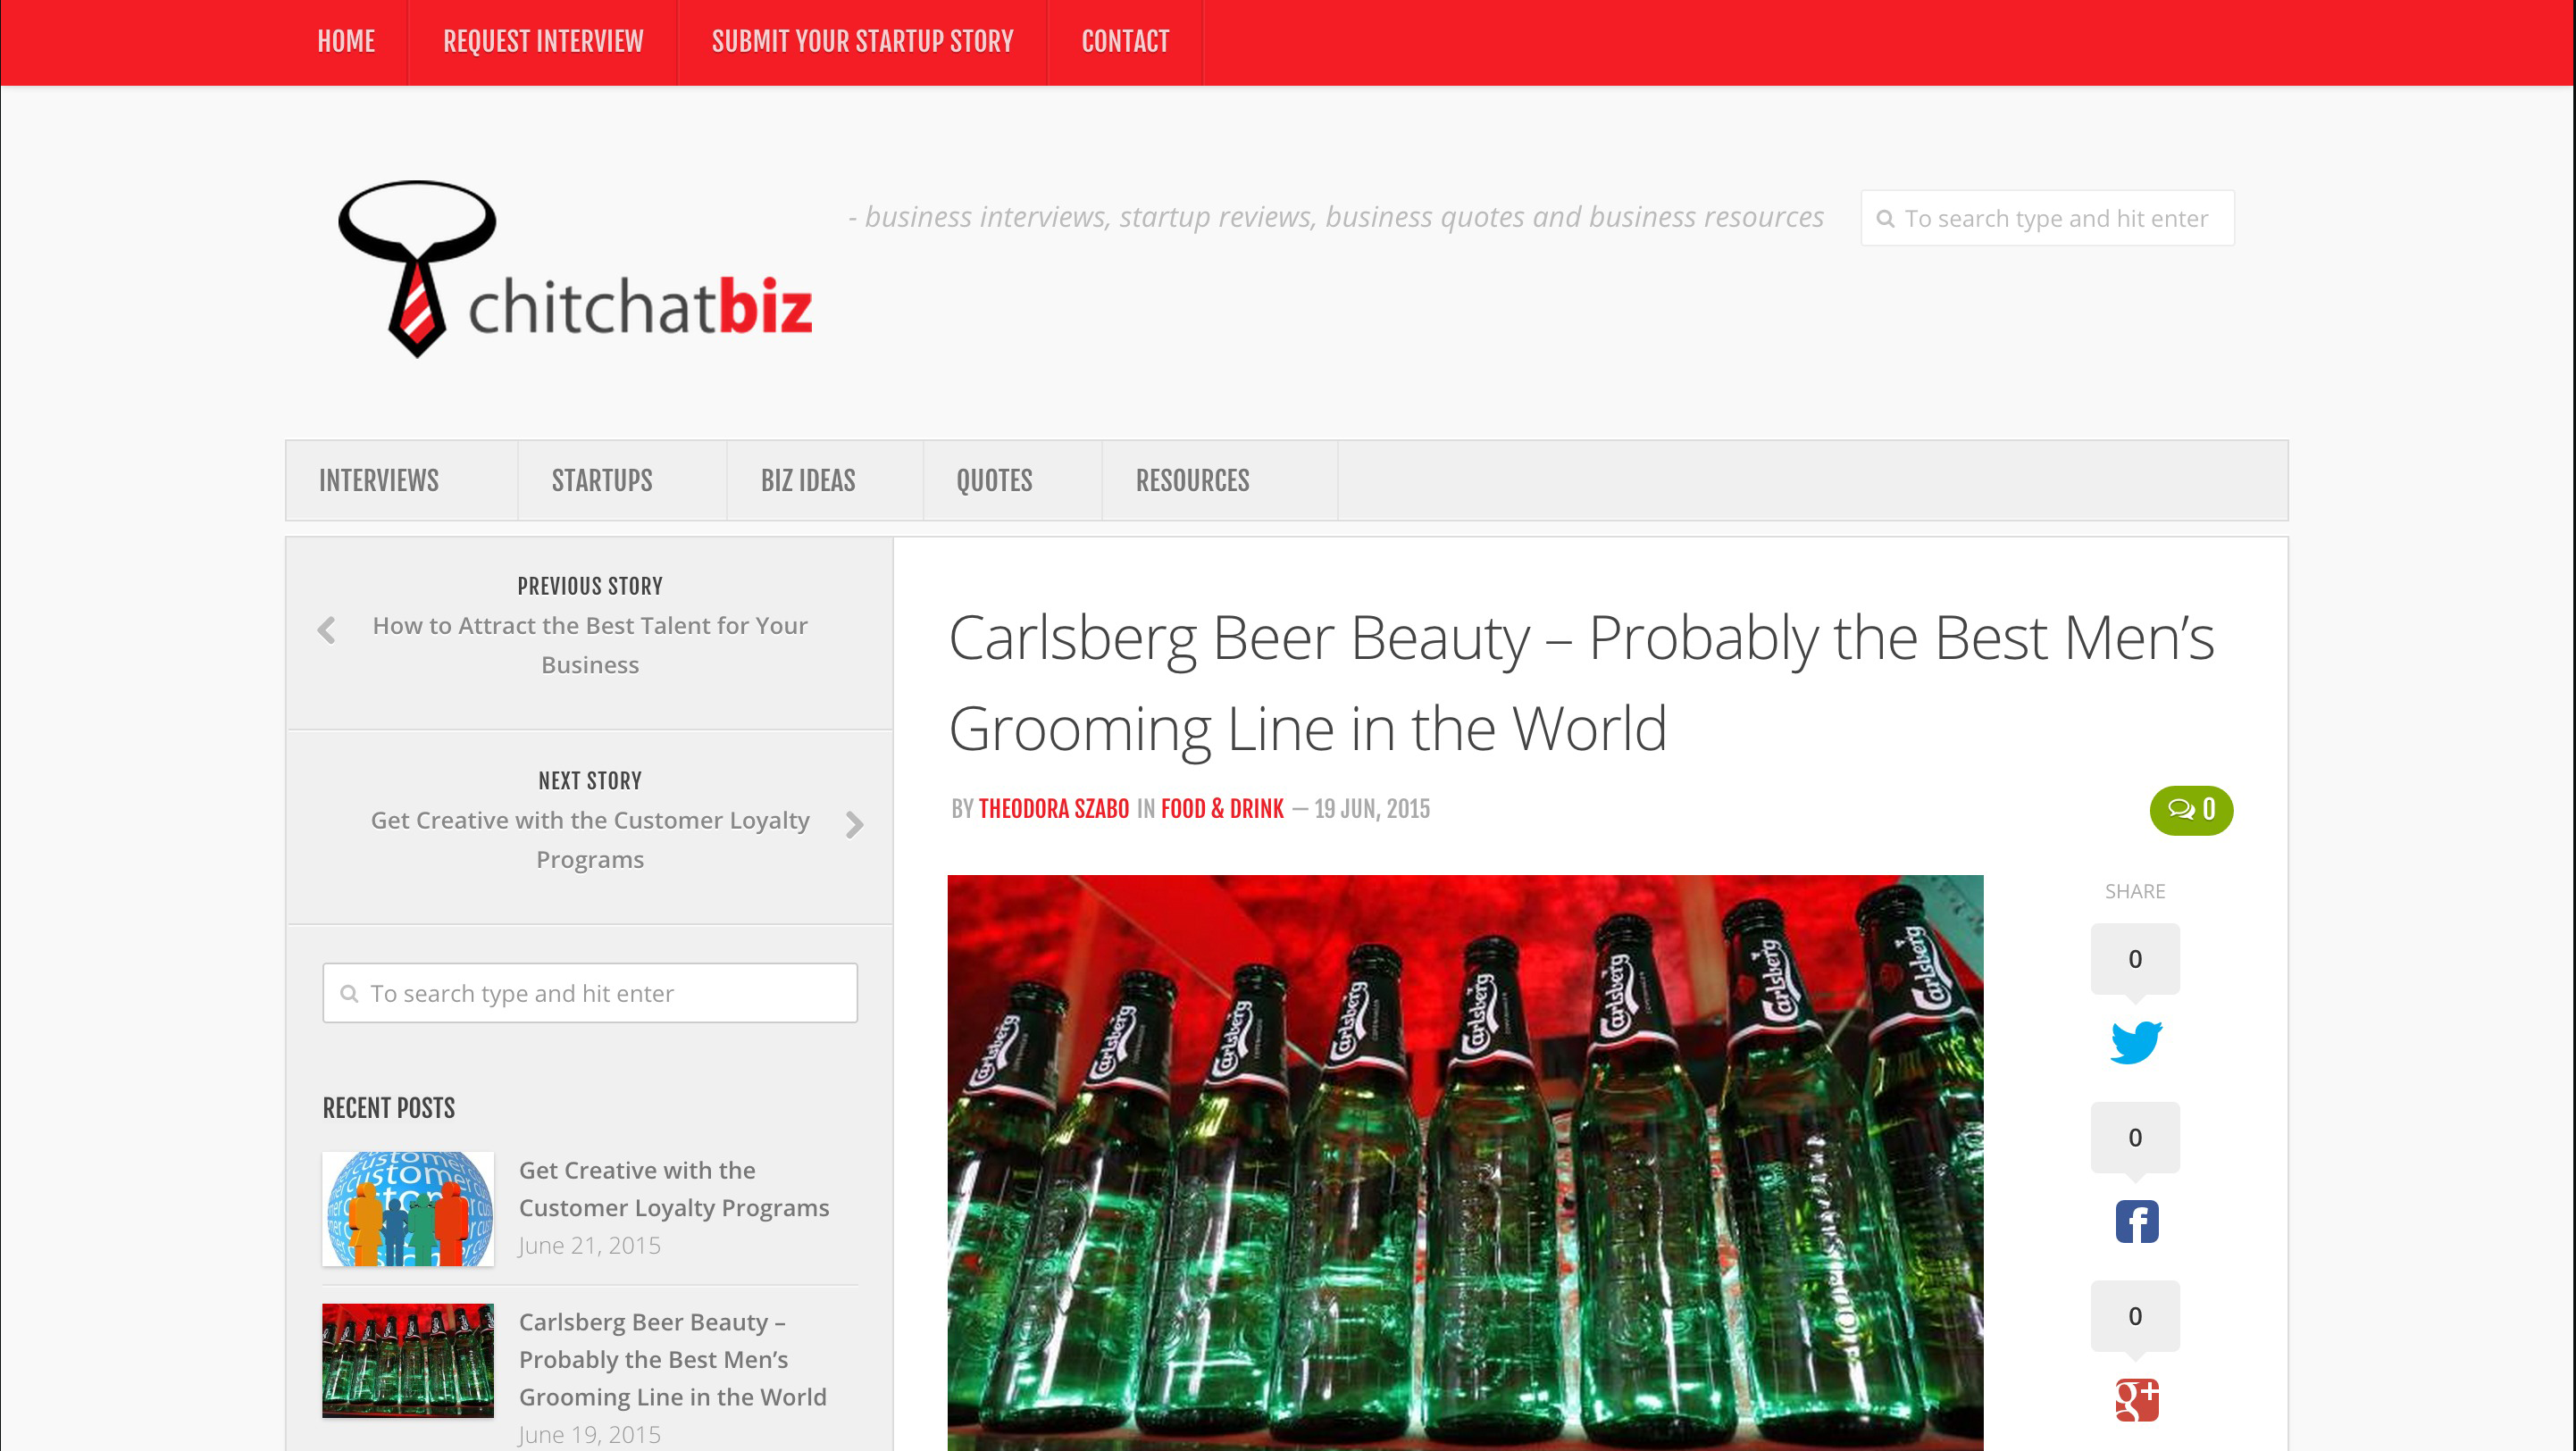 carlsberg-beer-beauty-probably-the-best-mens-grooming-line-in-the-world-chit-chat-biz